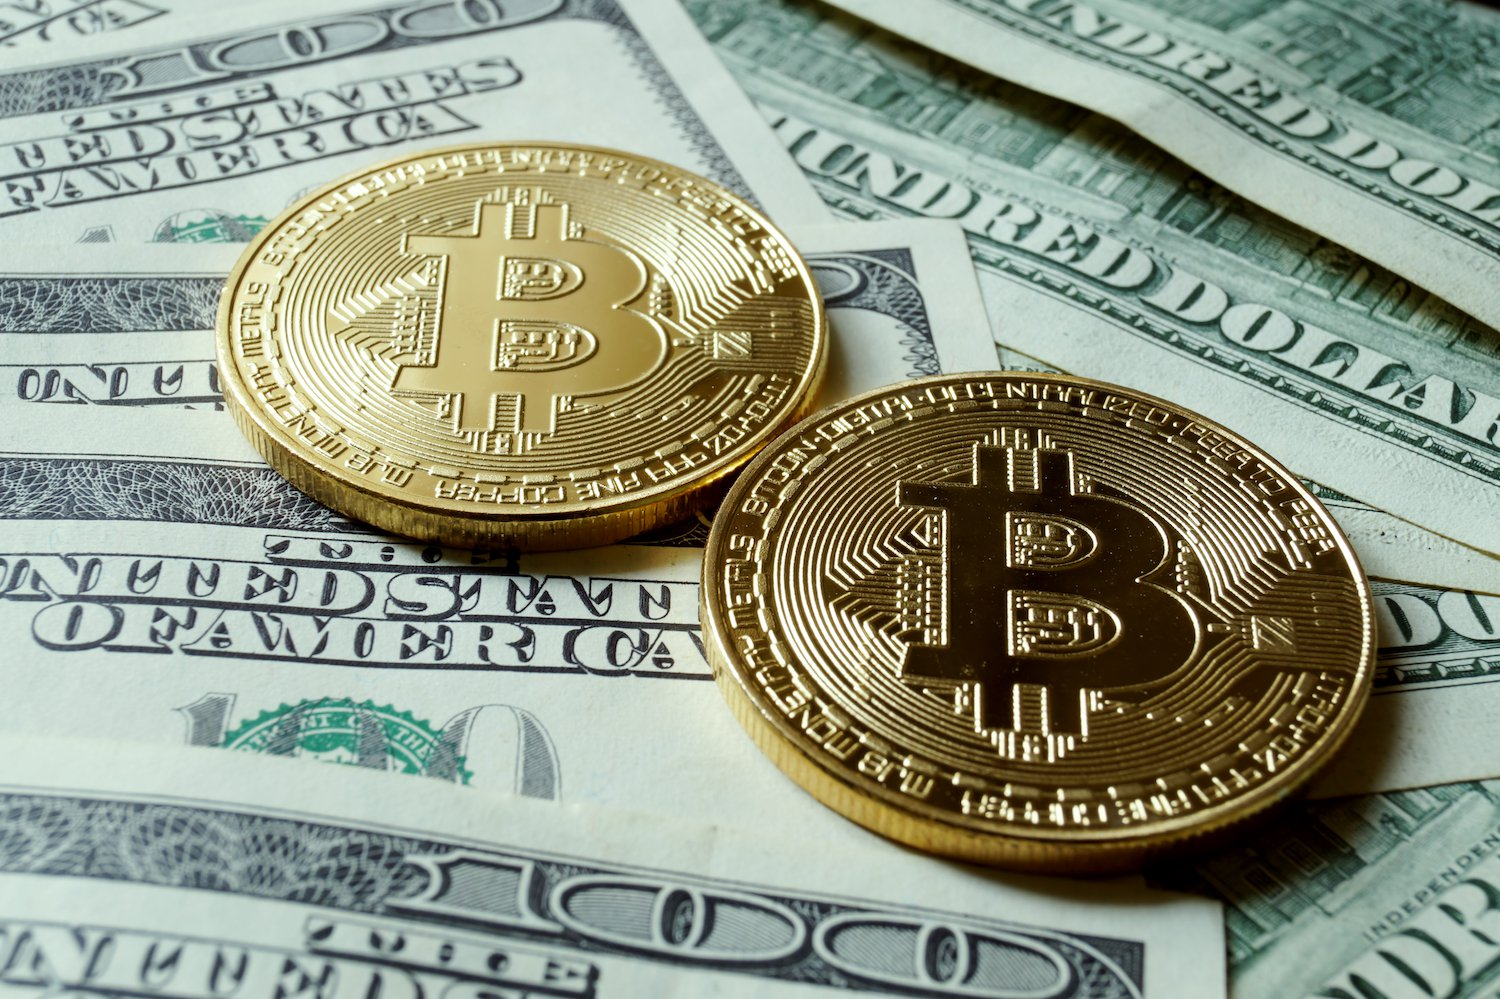 Bitcoin Price Dips to Two-Month Low Below $7K